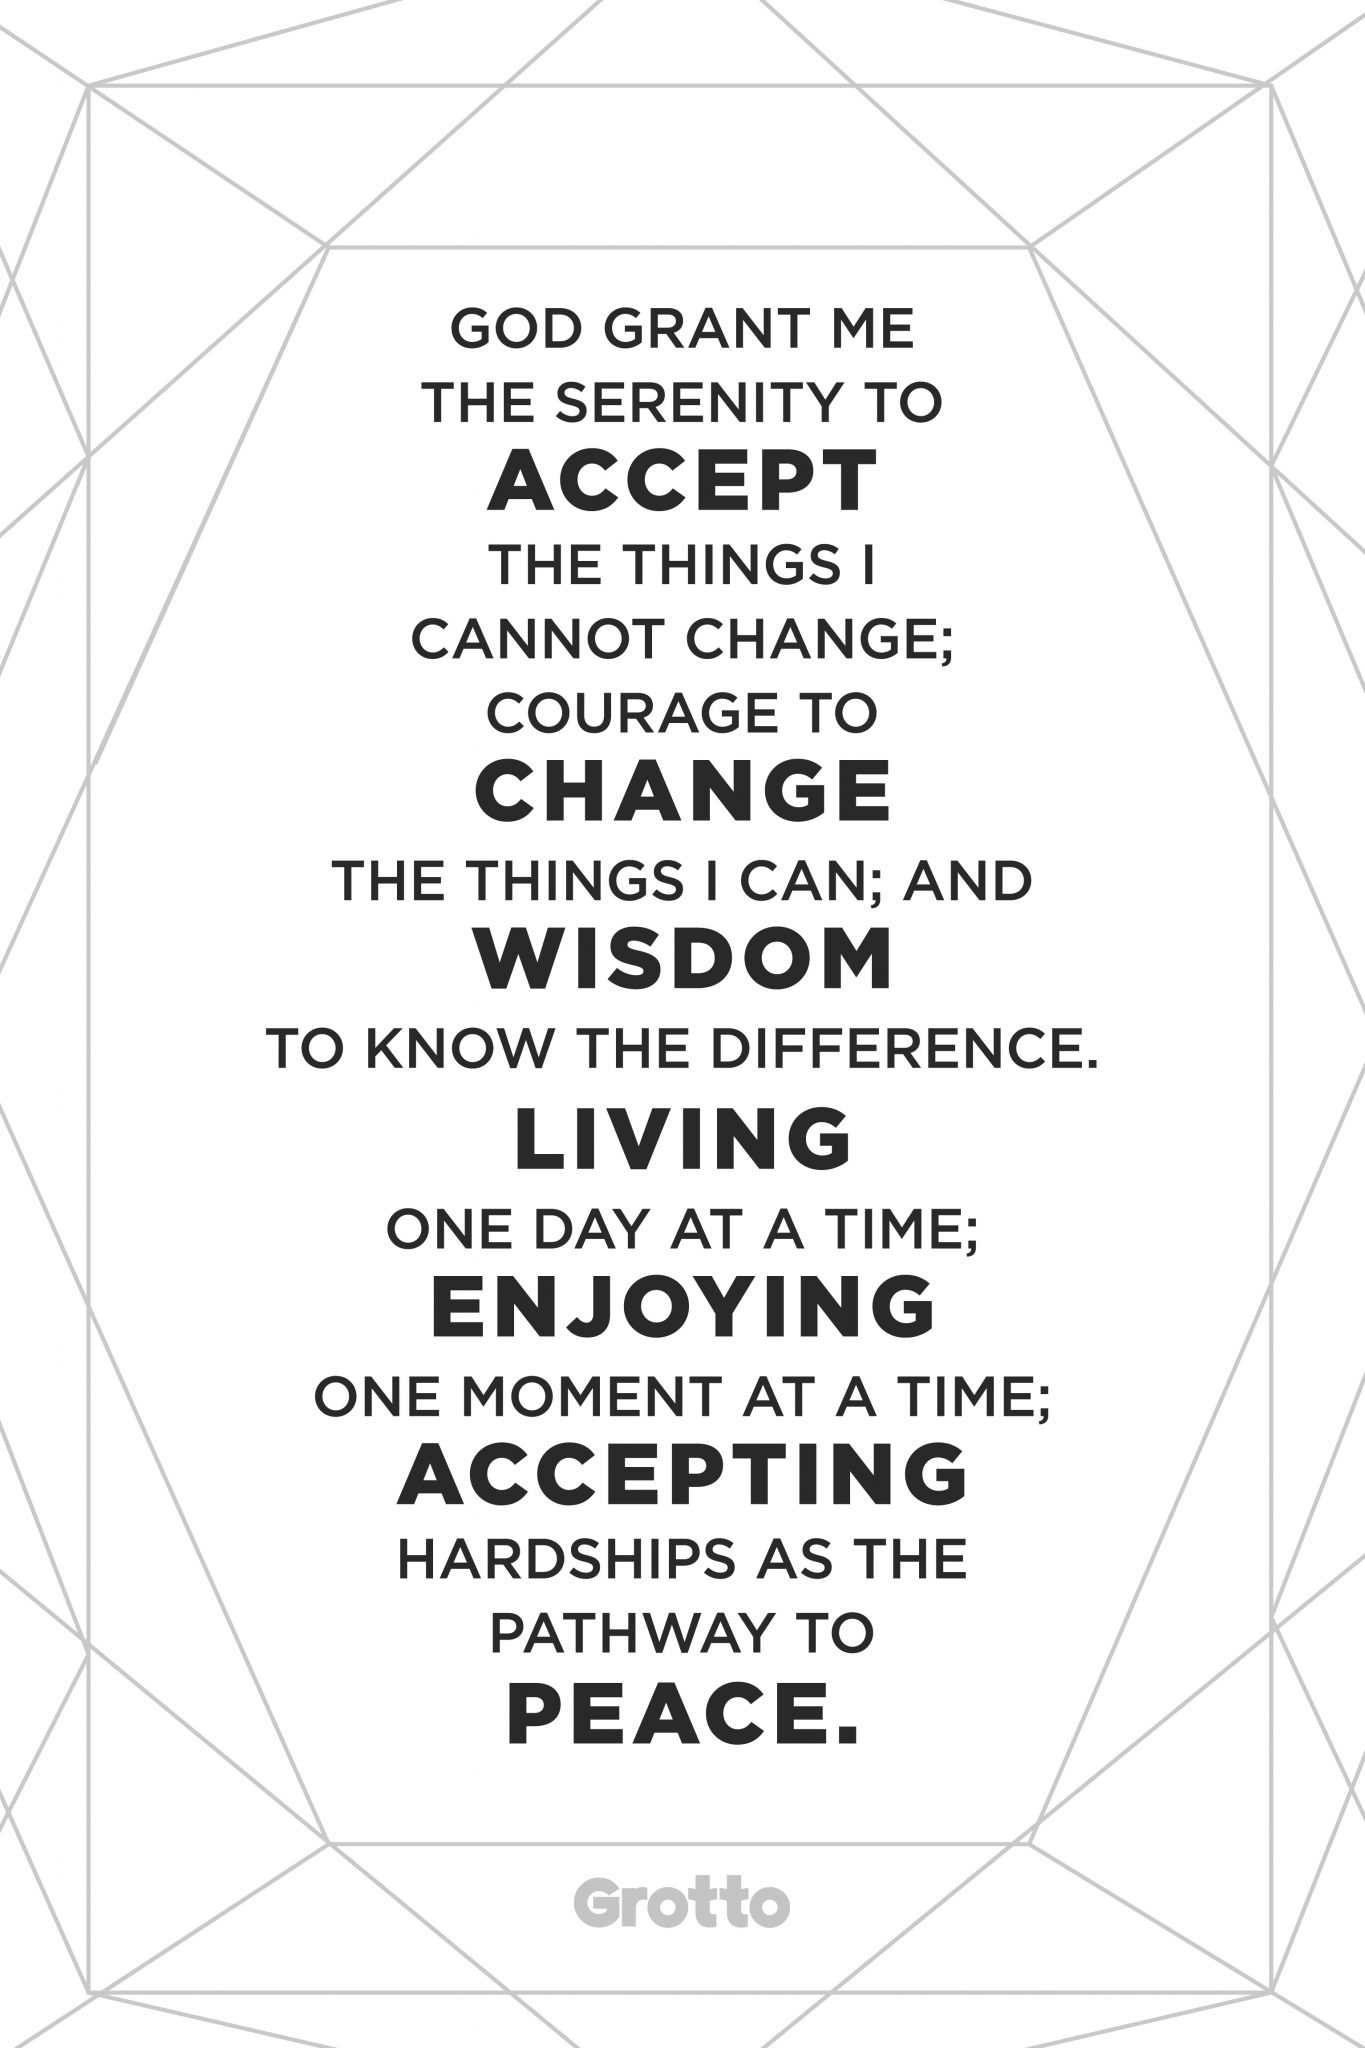 """Grotto prayer graphic of the """"Serenity Prayer."""" The graphic reads, """"God grant me the serenity to accept the things I cannot change; courage to change the things I can; and wisdom to know the difference. Living one day at a time; enjoying one moment at a time; accepting hardships as the pathway to peace."""""""